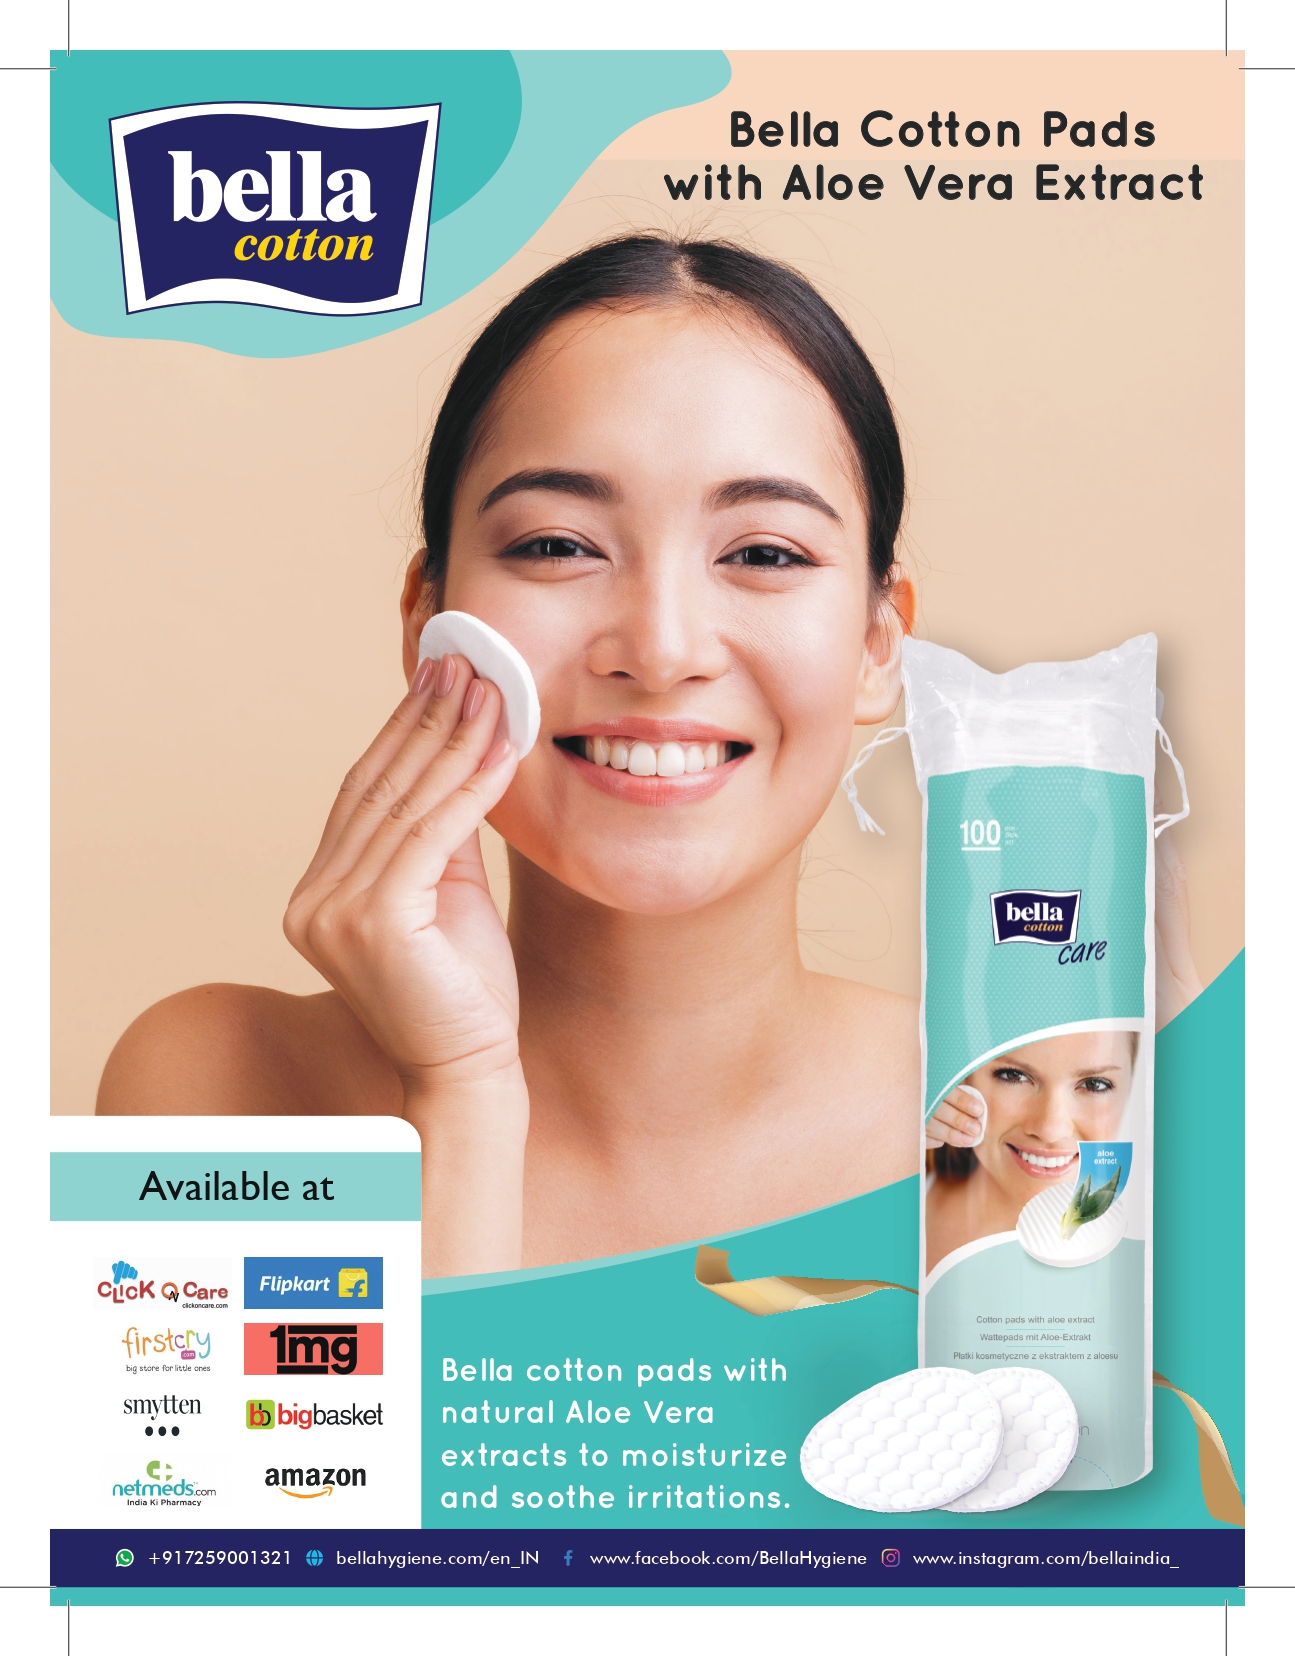 Bella Cotton Pads With Aloe Vera Extract